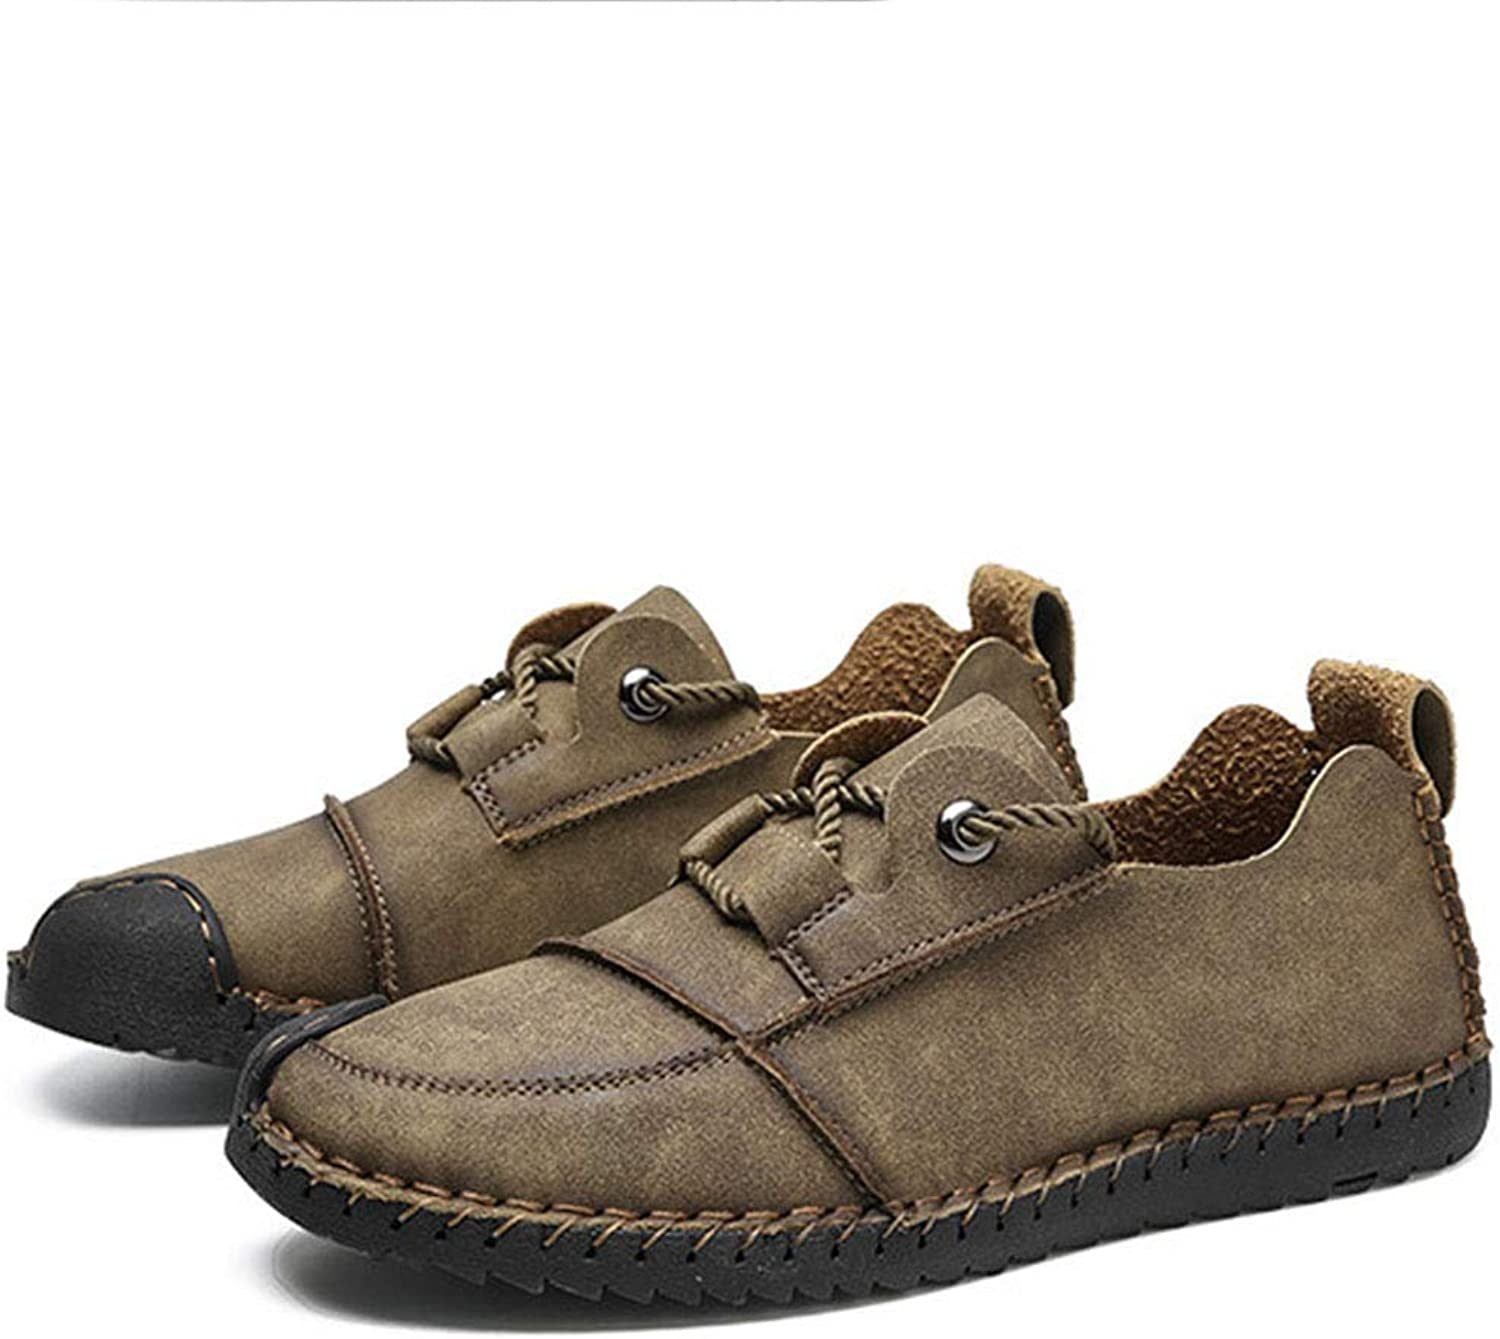 RLYAY Men's Leather shoes Autumn And Winter Large Size Outdoor Casual shoes Black Brown Khaki